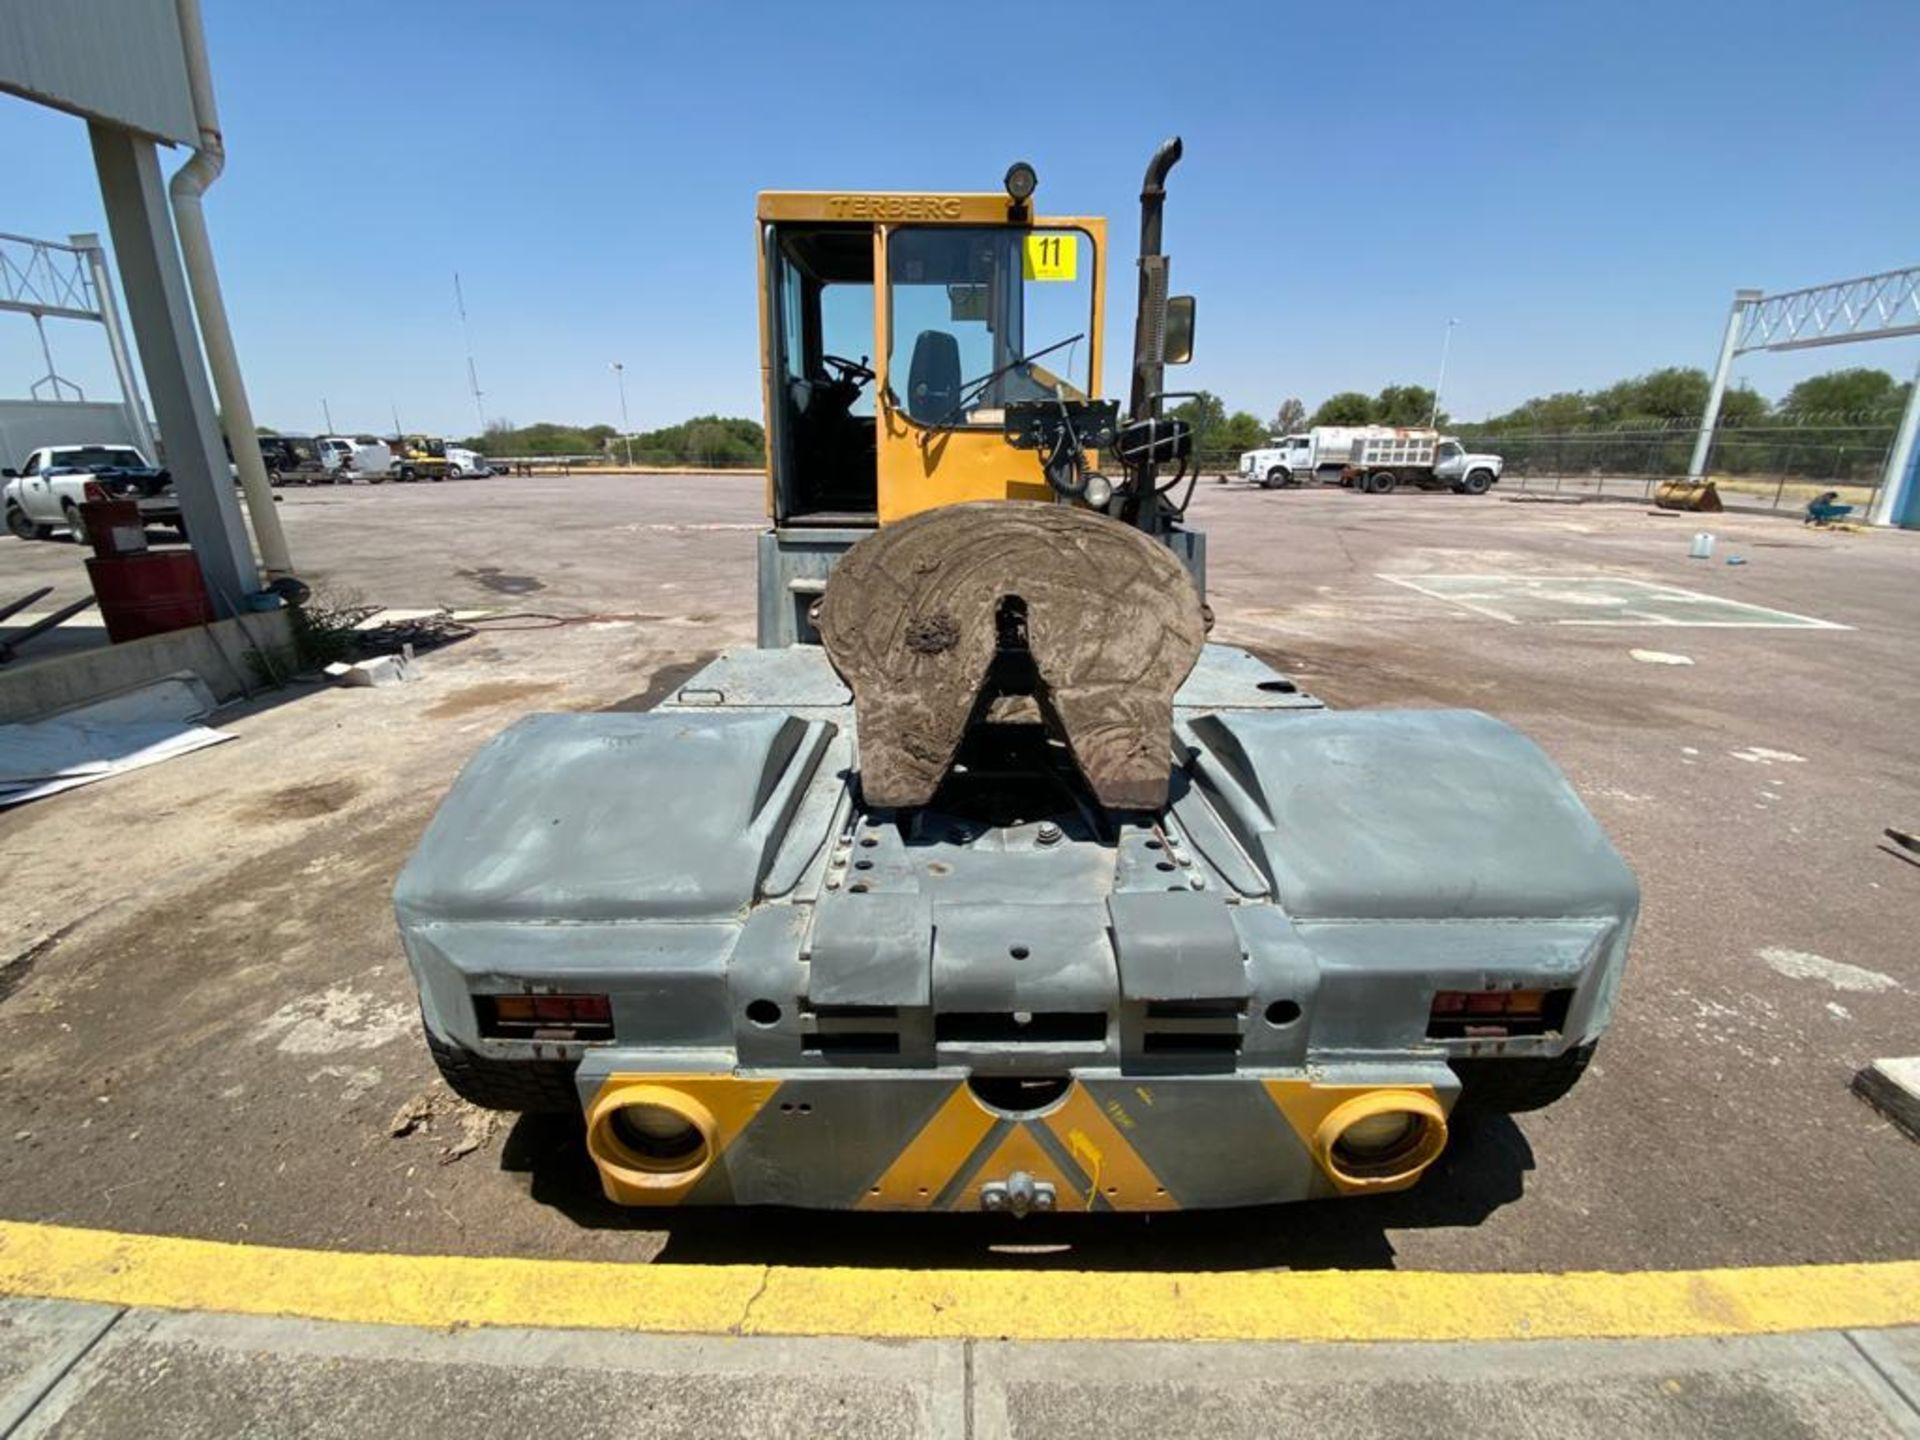 Terberg Capacity 2002 Terminal Tractor, automatic transmission - Image 14 of 57